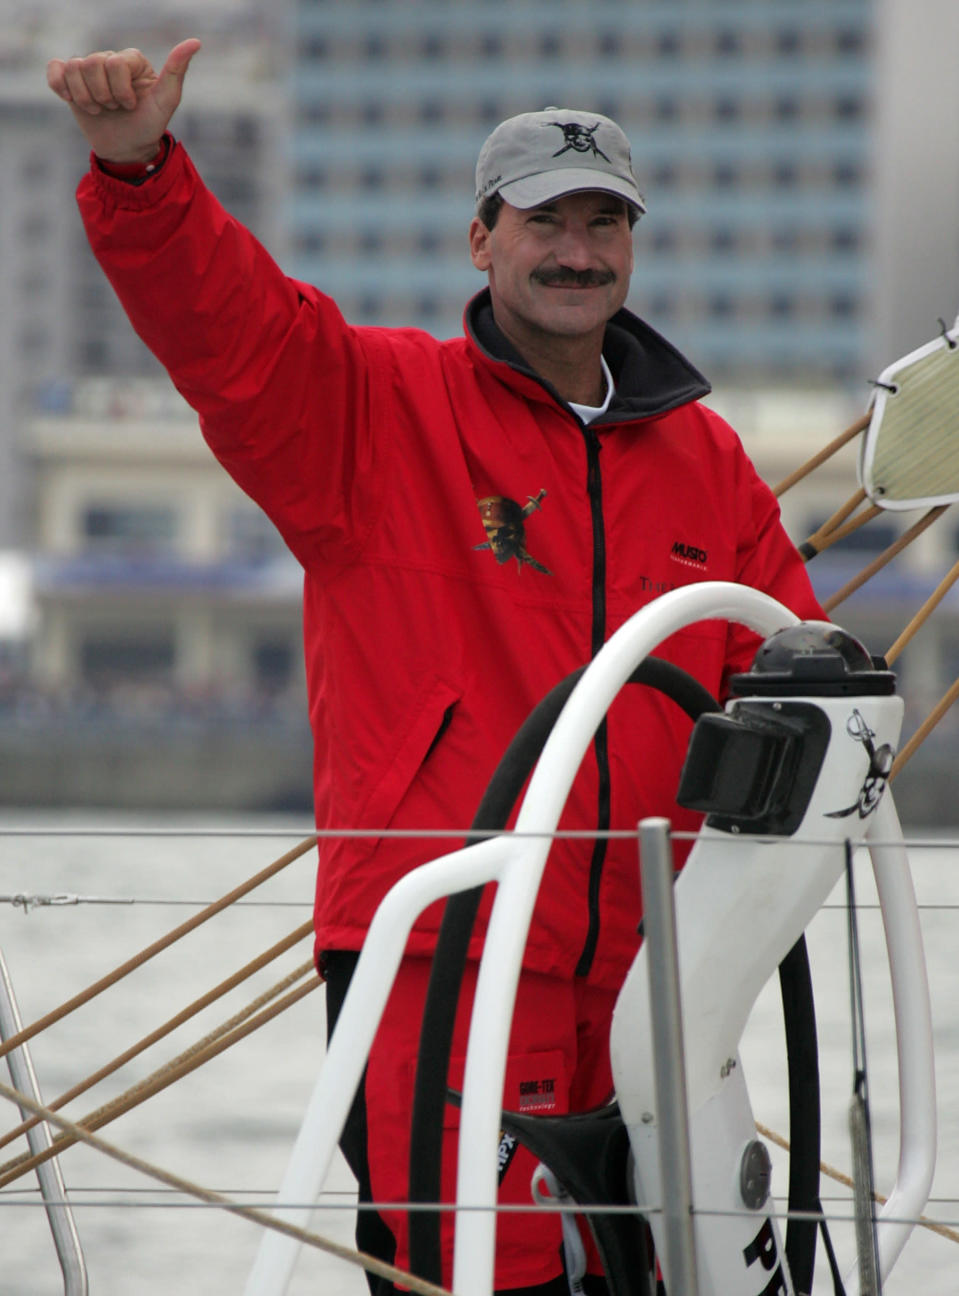 FILE - In this Nov. 12, 2005 file photo Pirates of the Caribbean skipper American Paul Cayard waves as he sails out of the Vigo Harbour, northern Spain prior to the start of the Volvo Ocean Race 2005. Cayard has raced in the America's Cup, the Olympics and was the first American skipper to win one of sailing's toughest challenges, the Whitbread Round the World Race. Now he faces another arduous task, guiding the underperforming U.S. Olympic sailing team as its new executive director. (AP Photo/Lalo R. Villar, File)